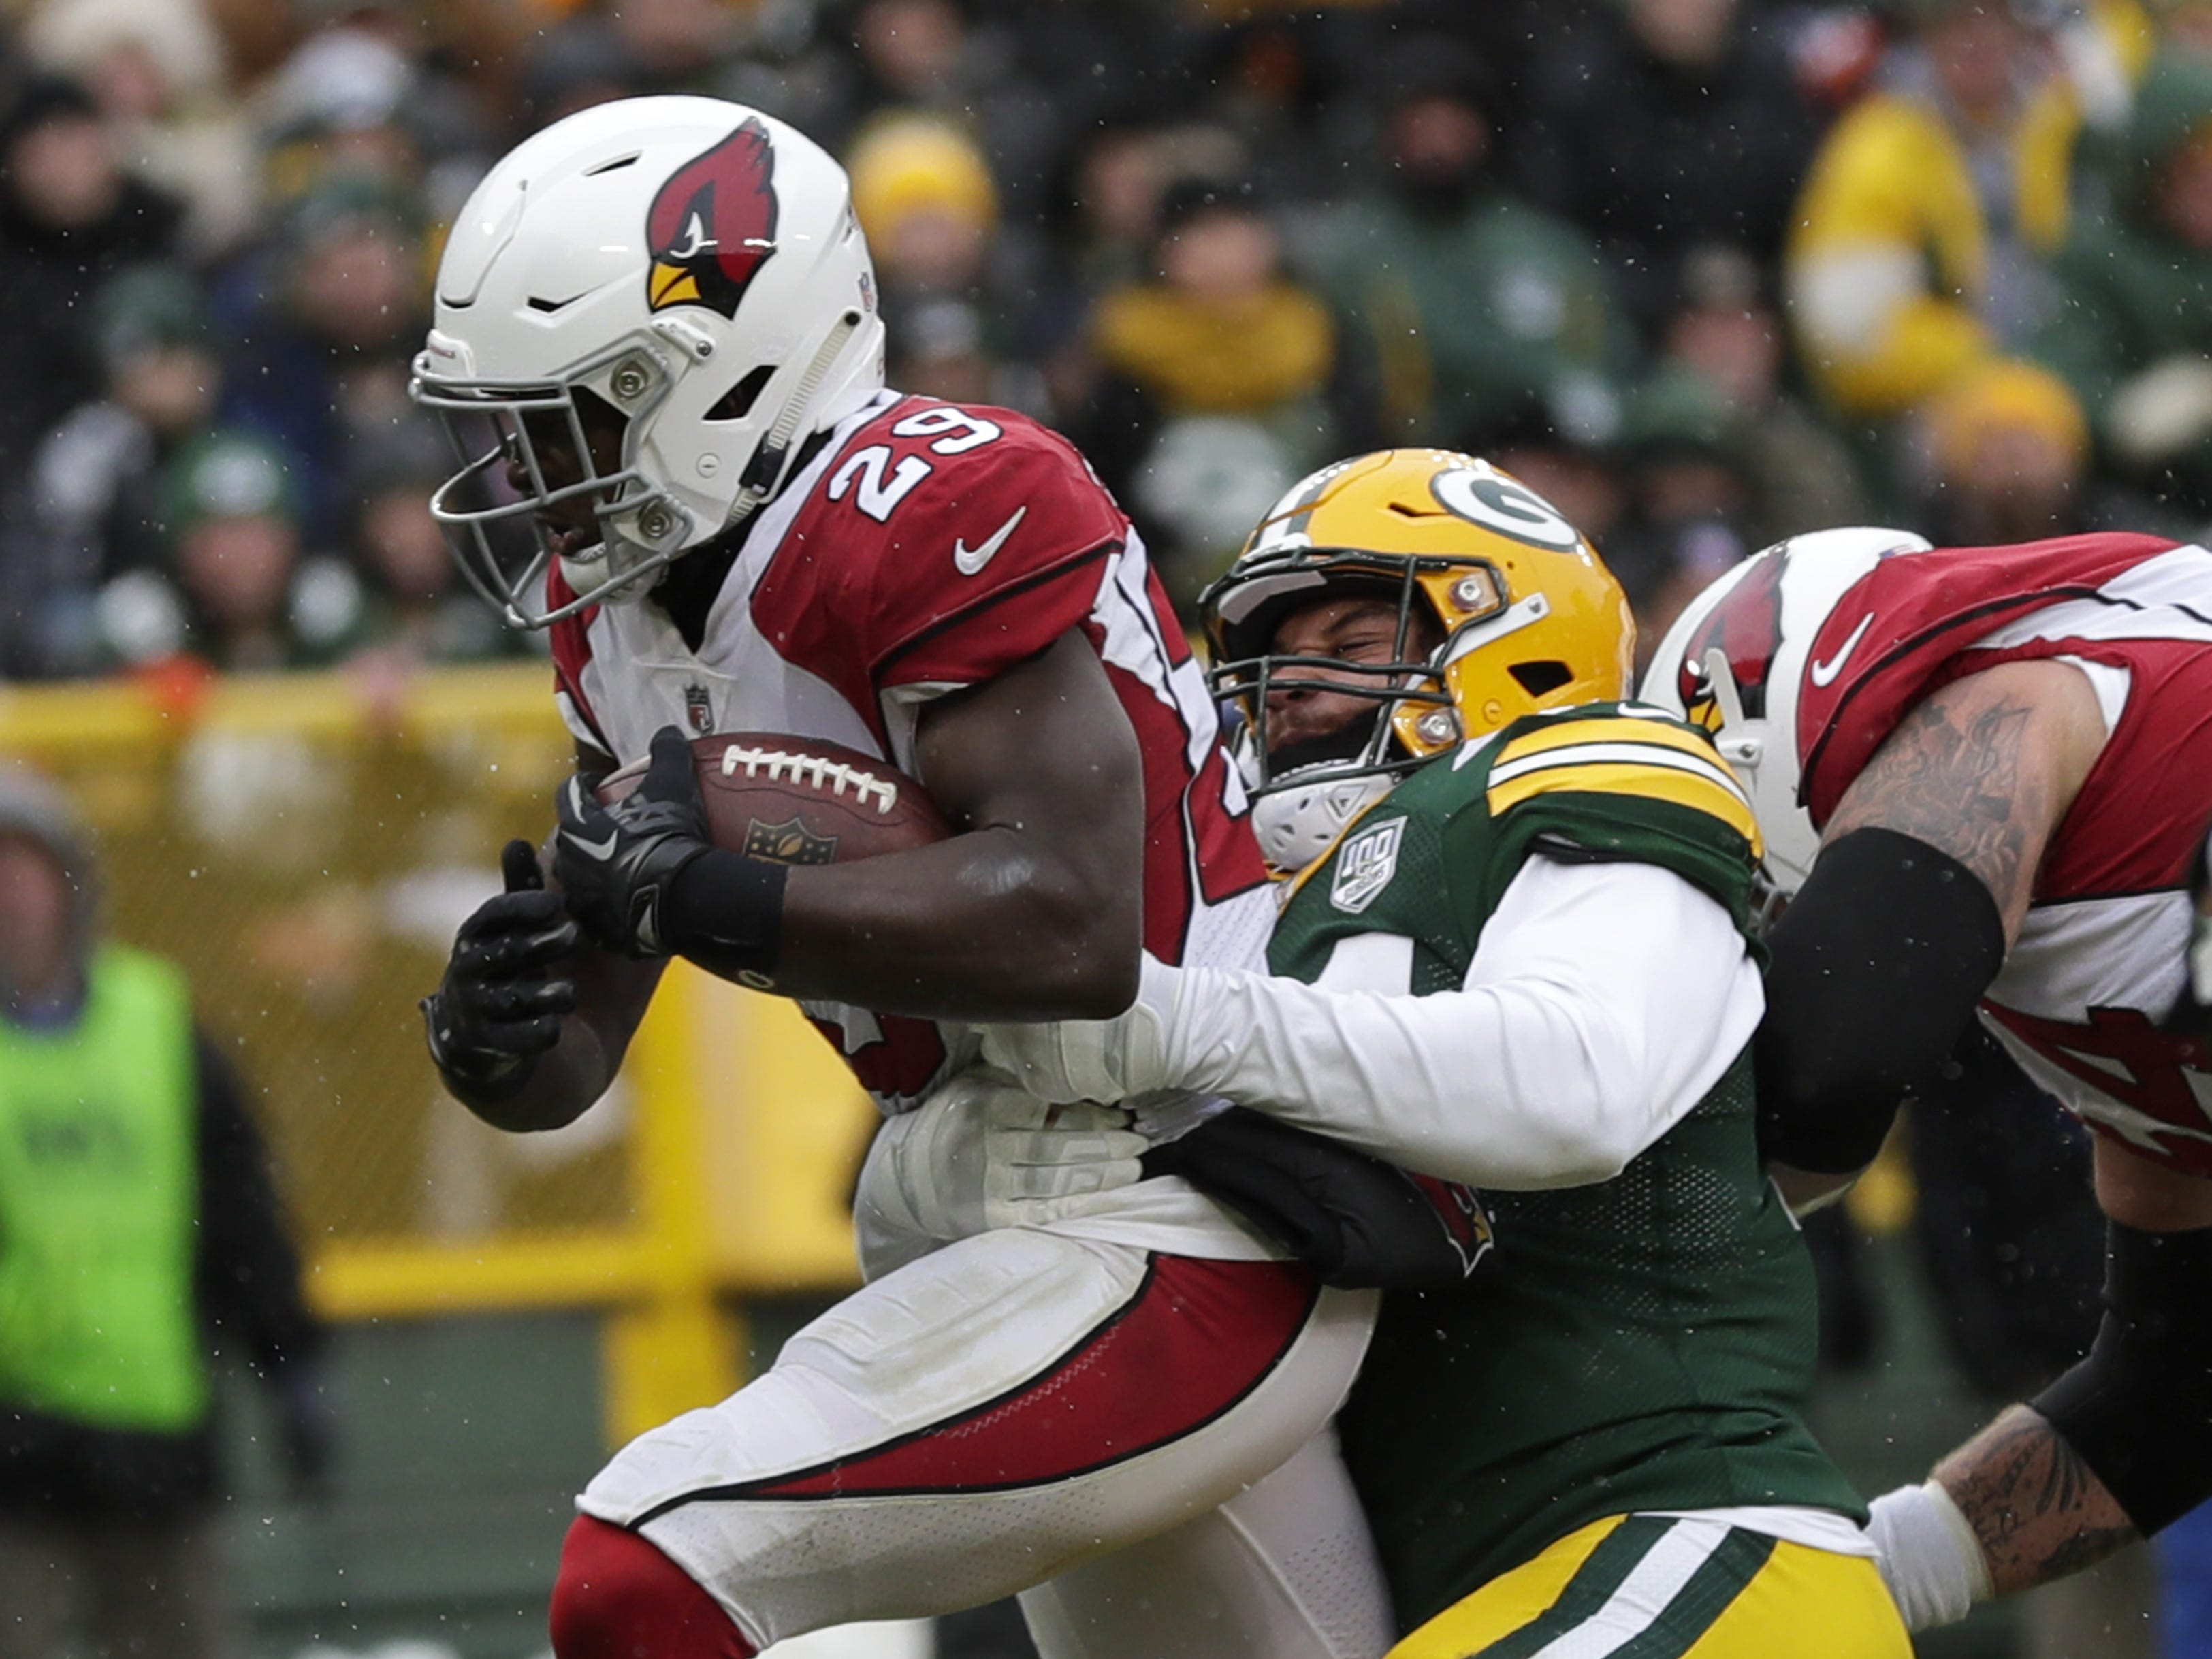 Arizona Cardinals running back Chase Edmonds (29) scores a touchdown against Green Bay Packers inside linebacker Antonio Morrison (44) in the second quarter Sunday, December 2, 2018, at Lambeau Field in Green Bay, Wis.  Dan Powers/USA TODAY NETWORK-Wisconsin